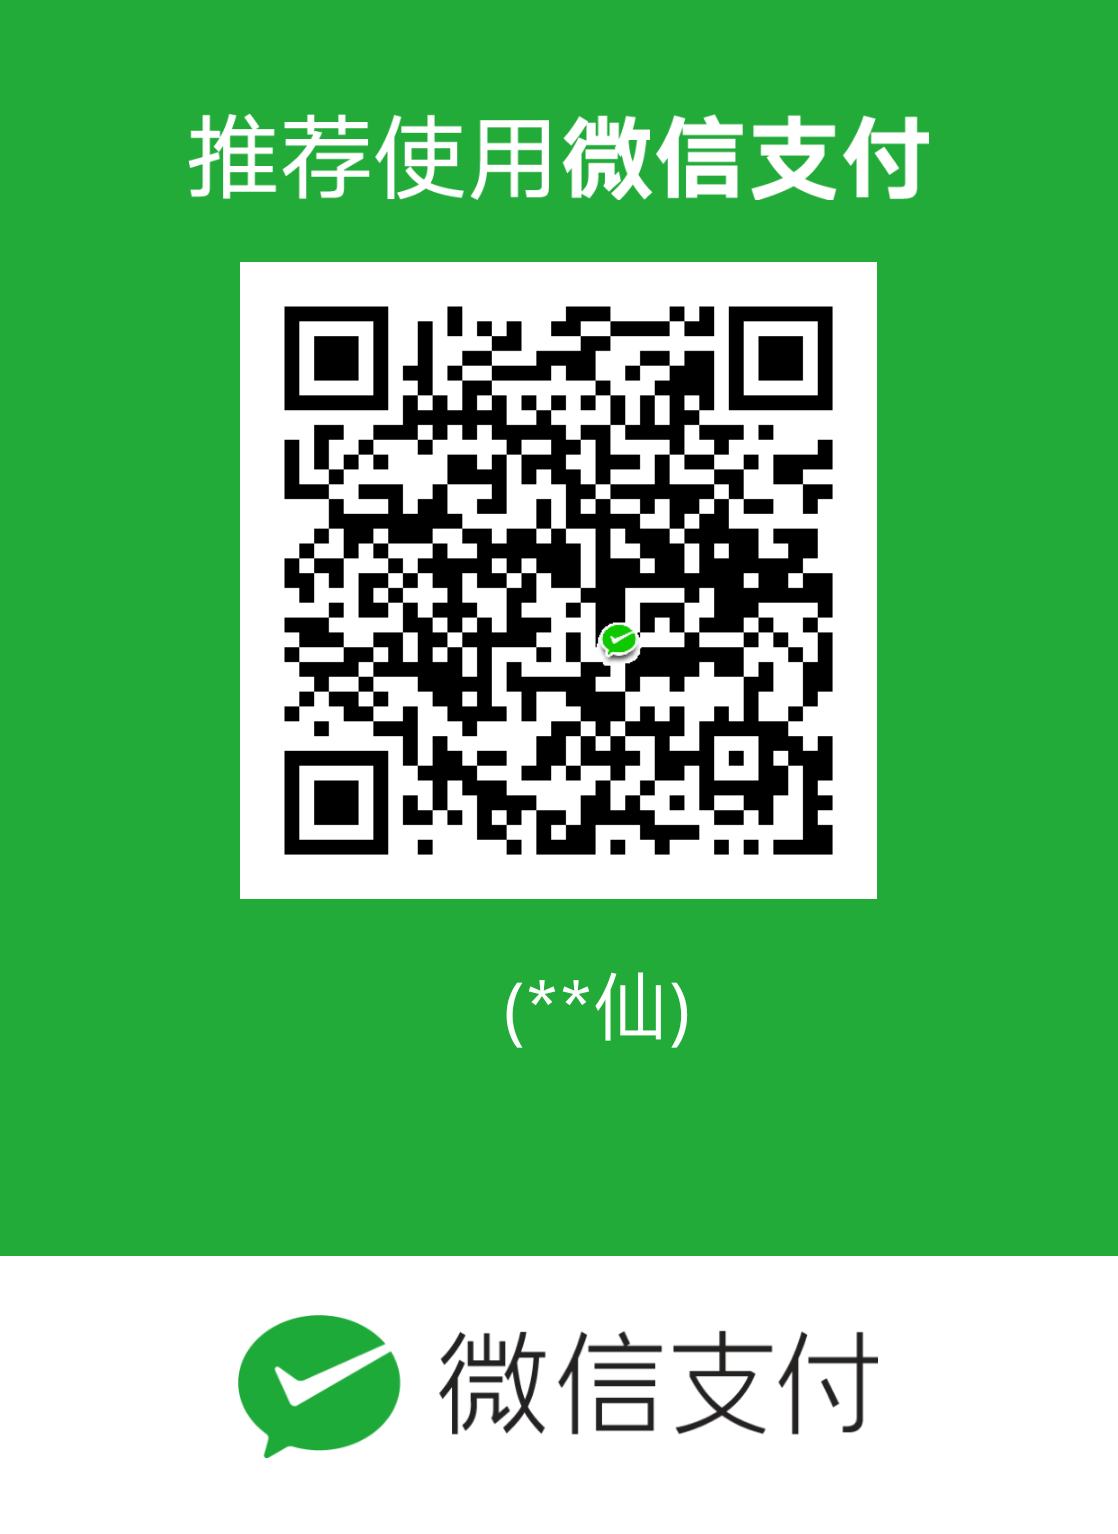 mm_facetoface_collect_qrcode_1596609980596.png